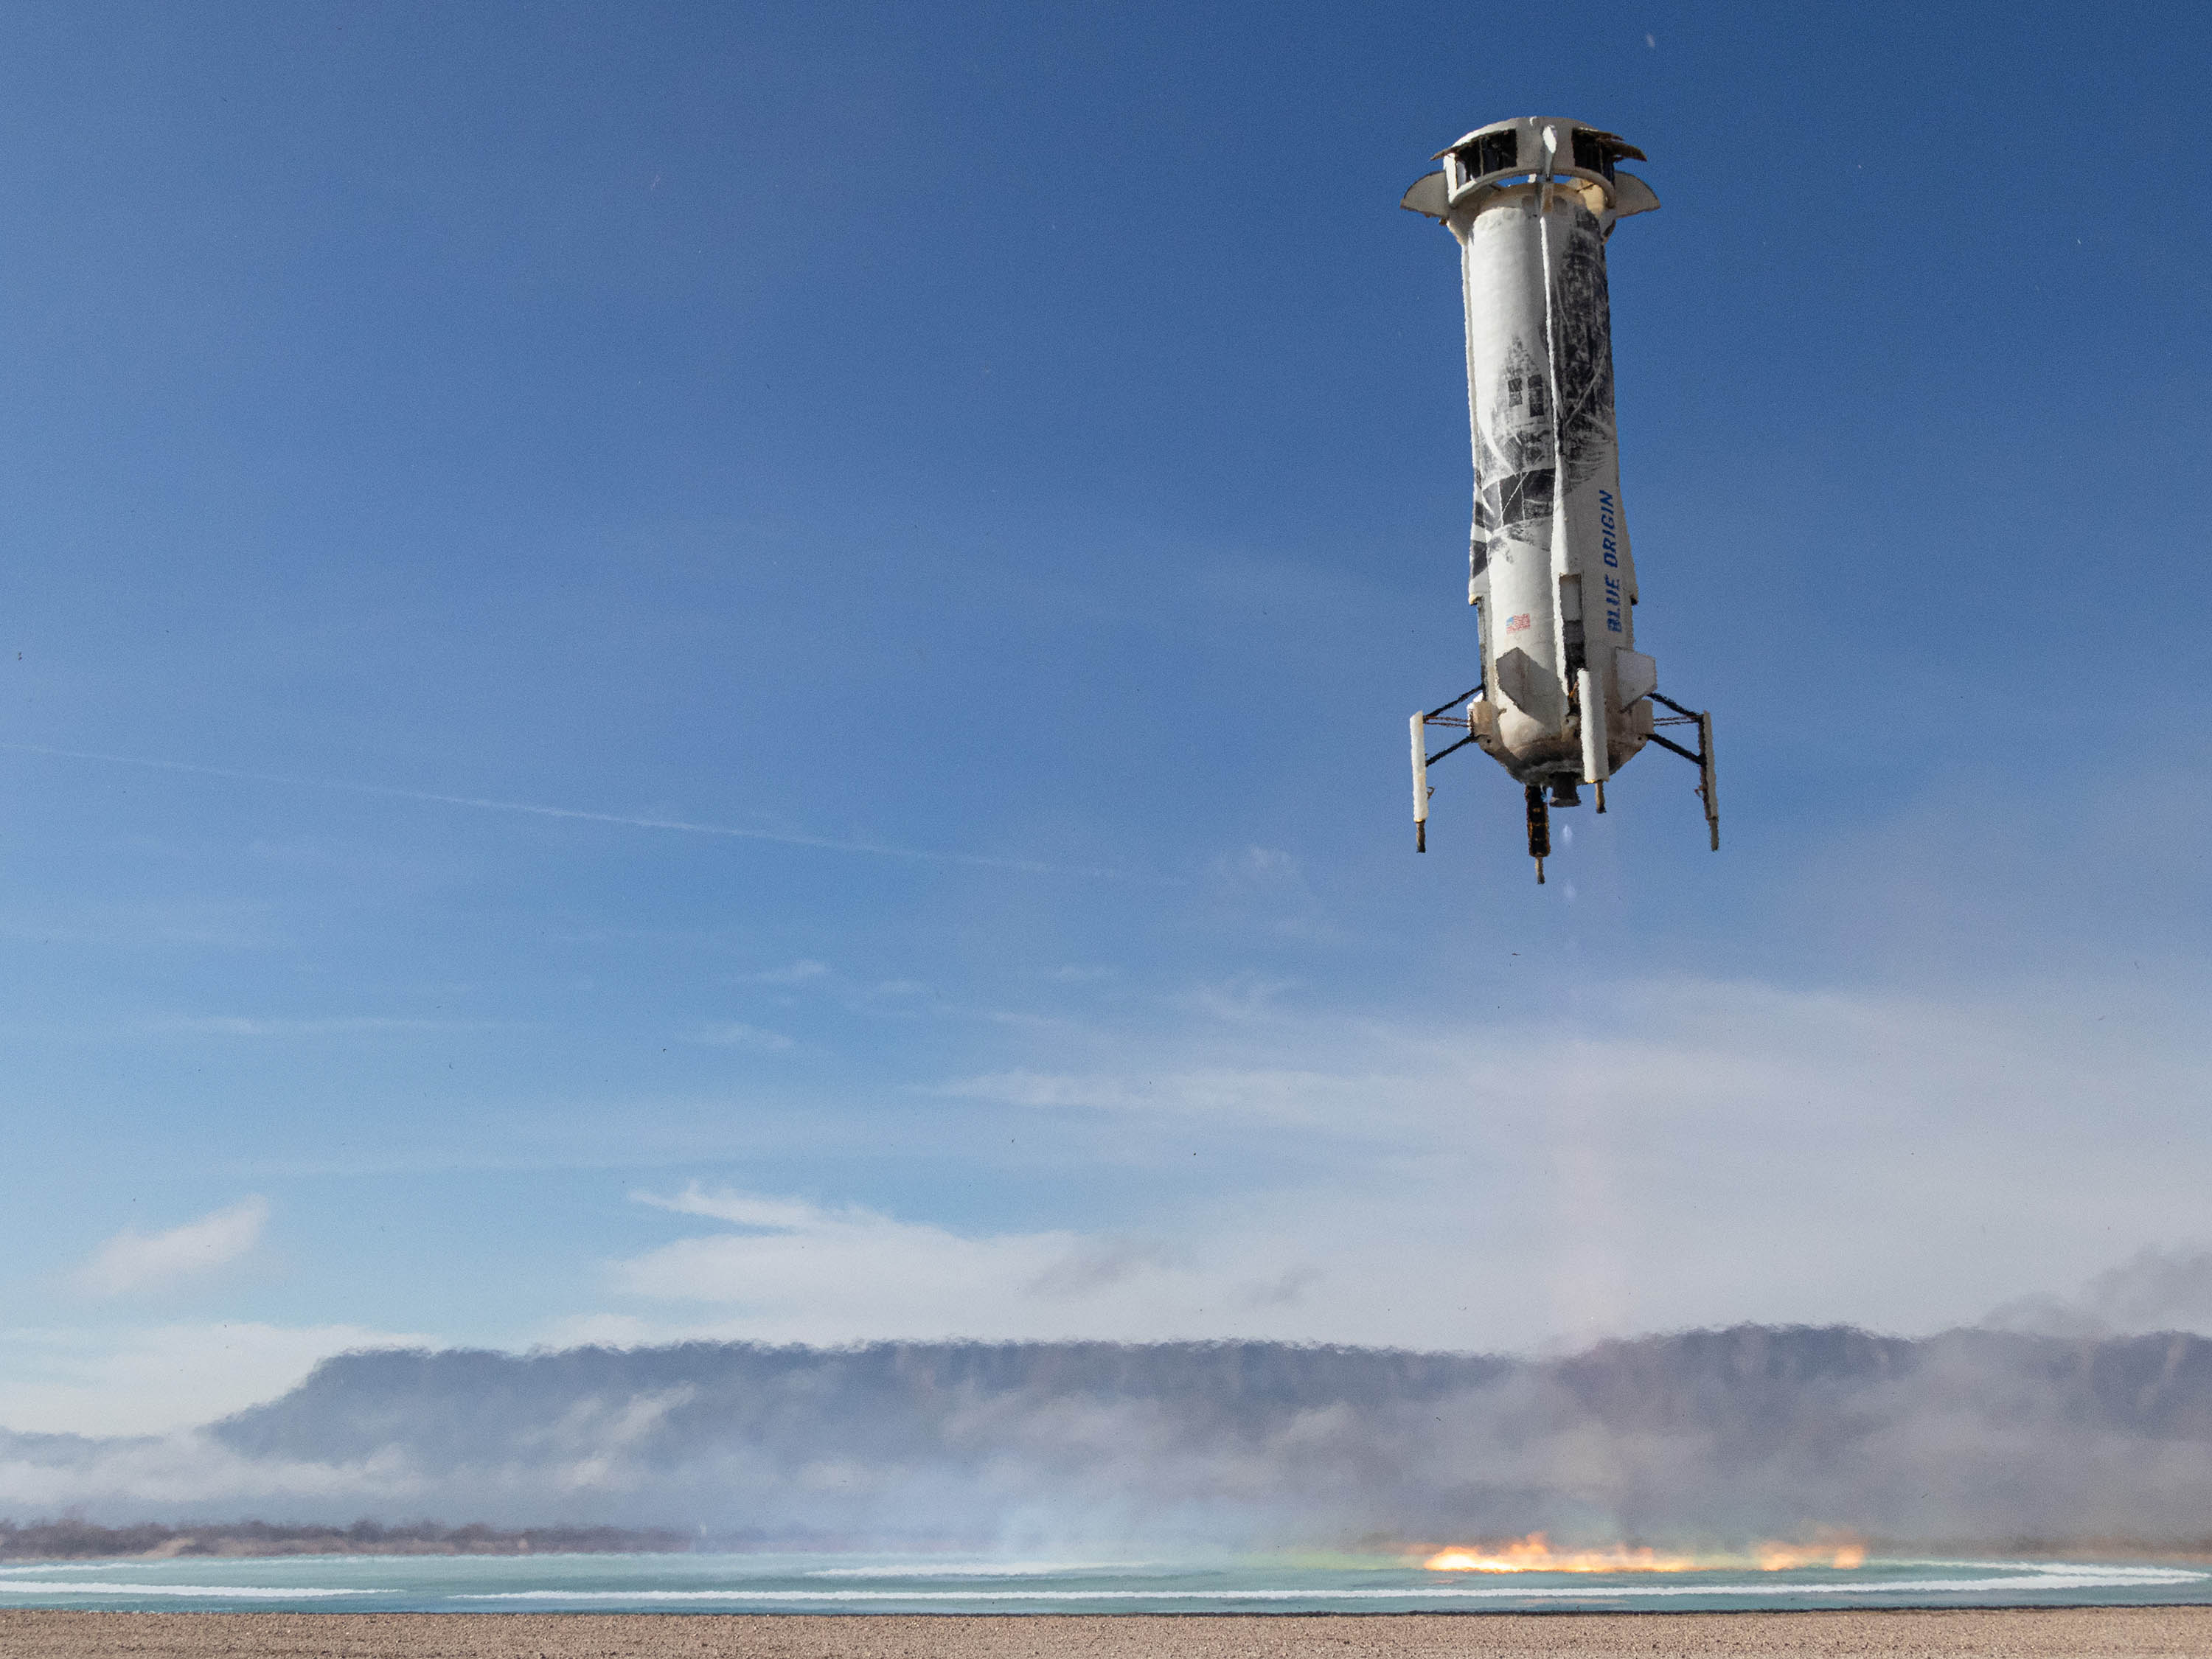 Max Q: Blue Origin launches a New Shepard and Rocket Lab officially opens U.S. launch site